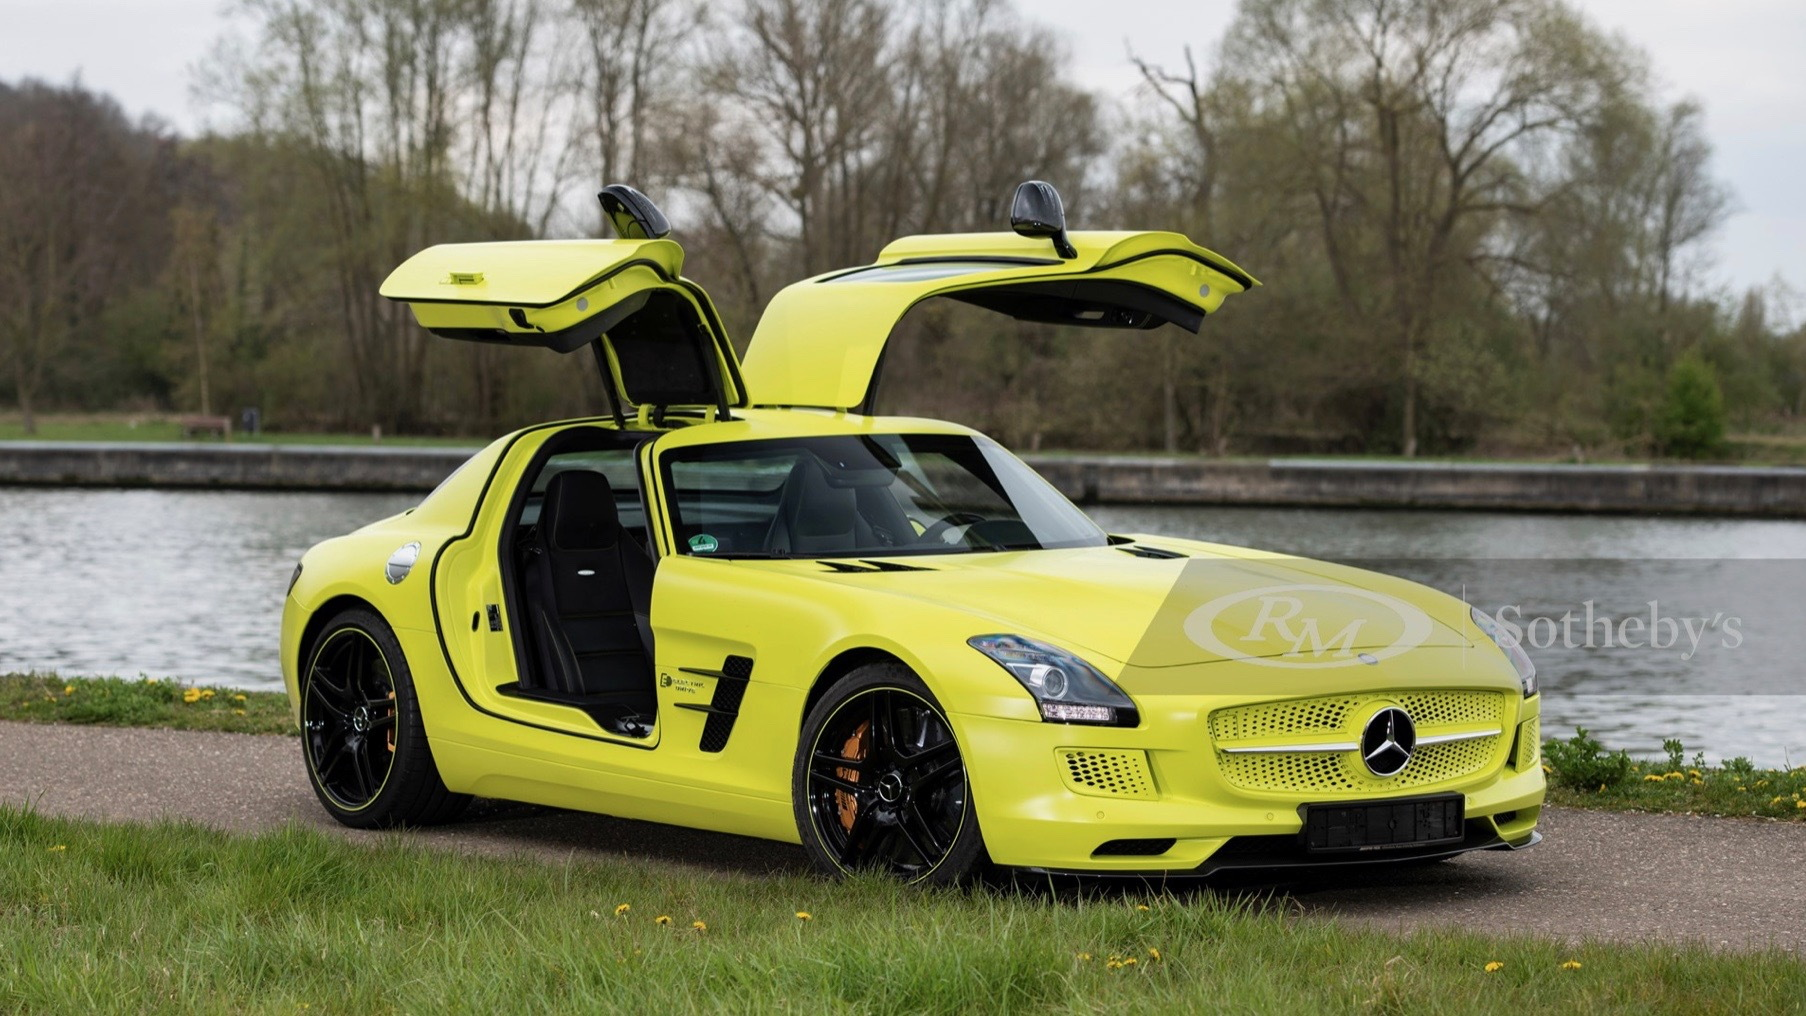 2013 Mercedes-Benz SLS AMG Electric Drive (Photo by RM Sotheby's)